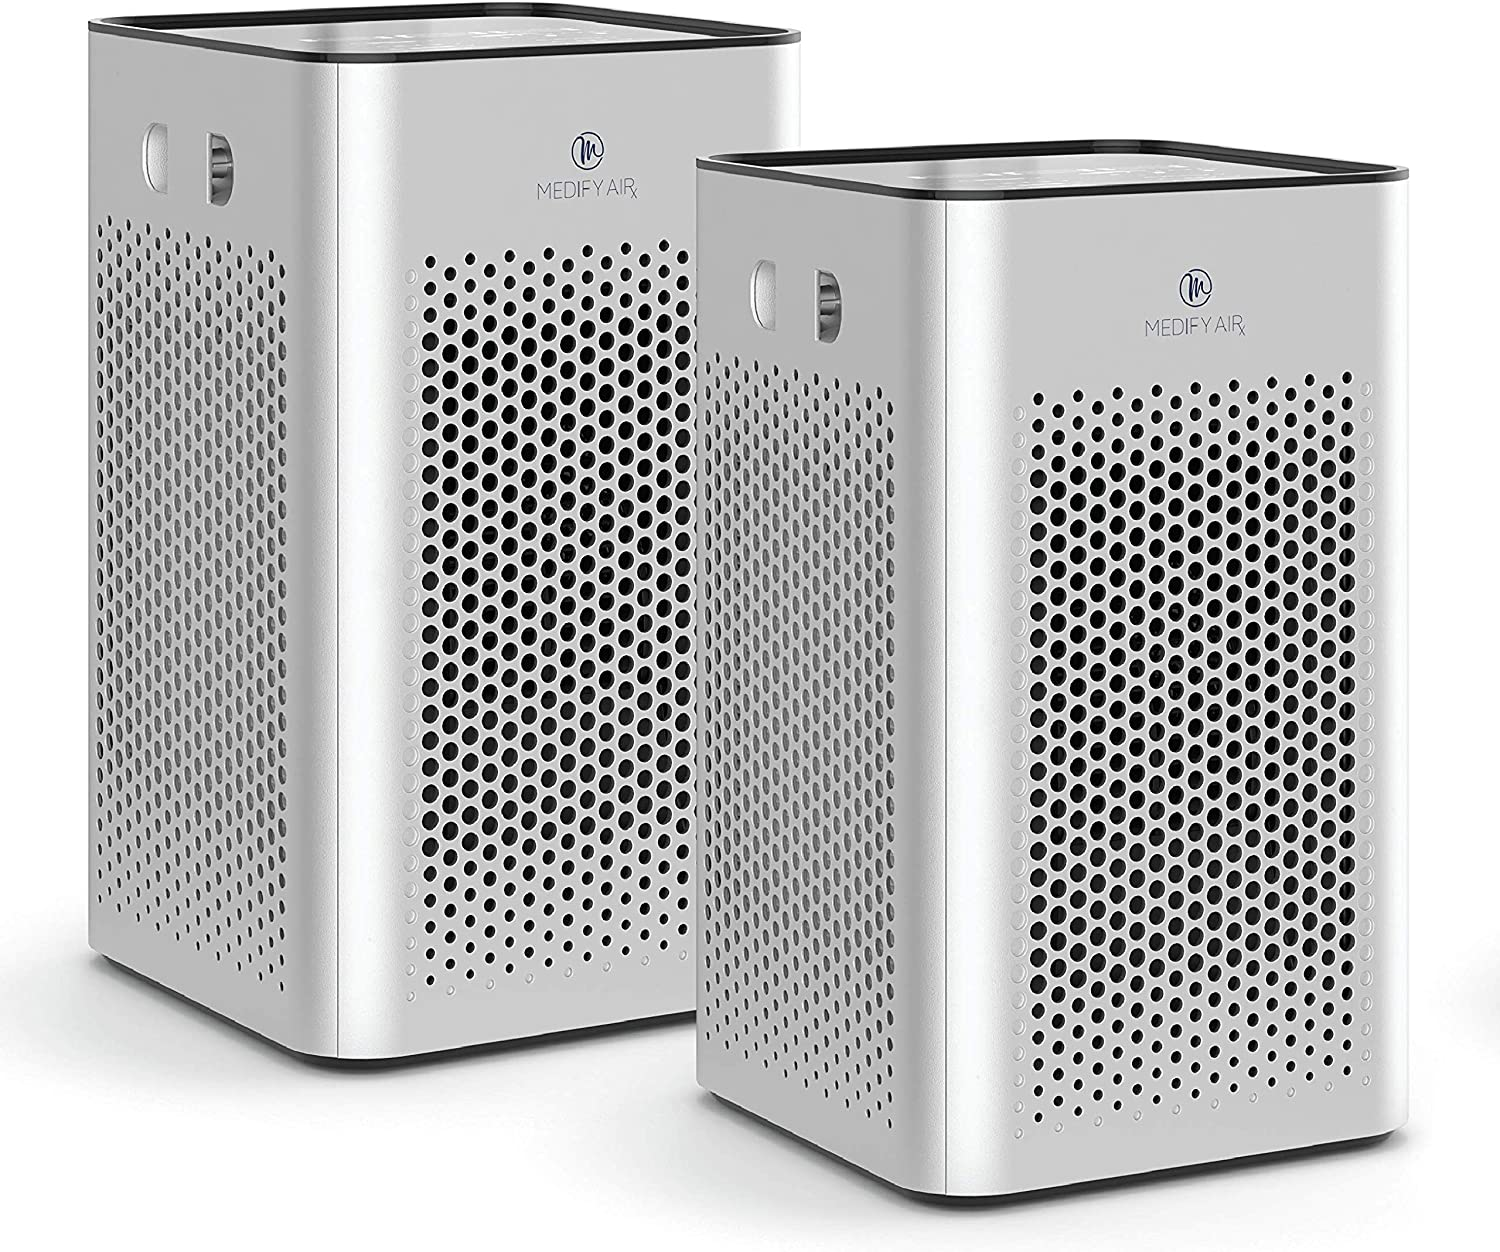 Medify MA-25 Air Purifier with H13 True HEPA Filter   500 sq ft Coverage   for Smoke, Smokers, Dust, Odors, Pet Dander   Quiet 99.9% Removal to 0.1 Microns   Silver, 2-Pack